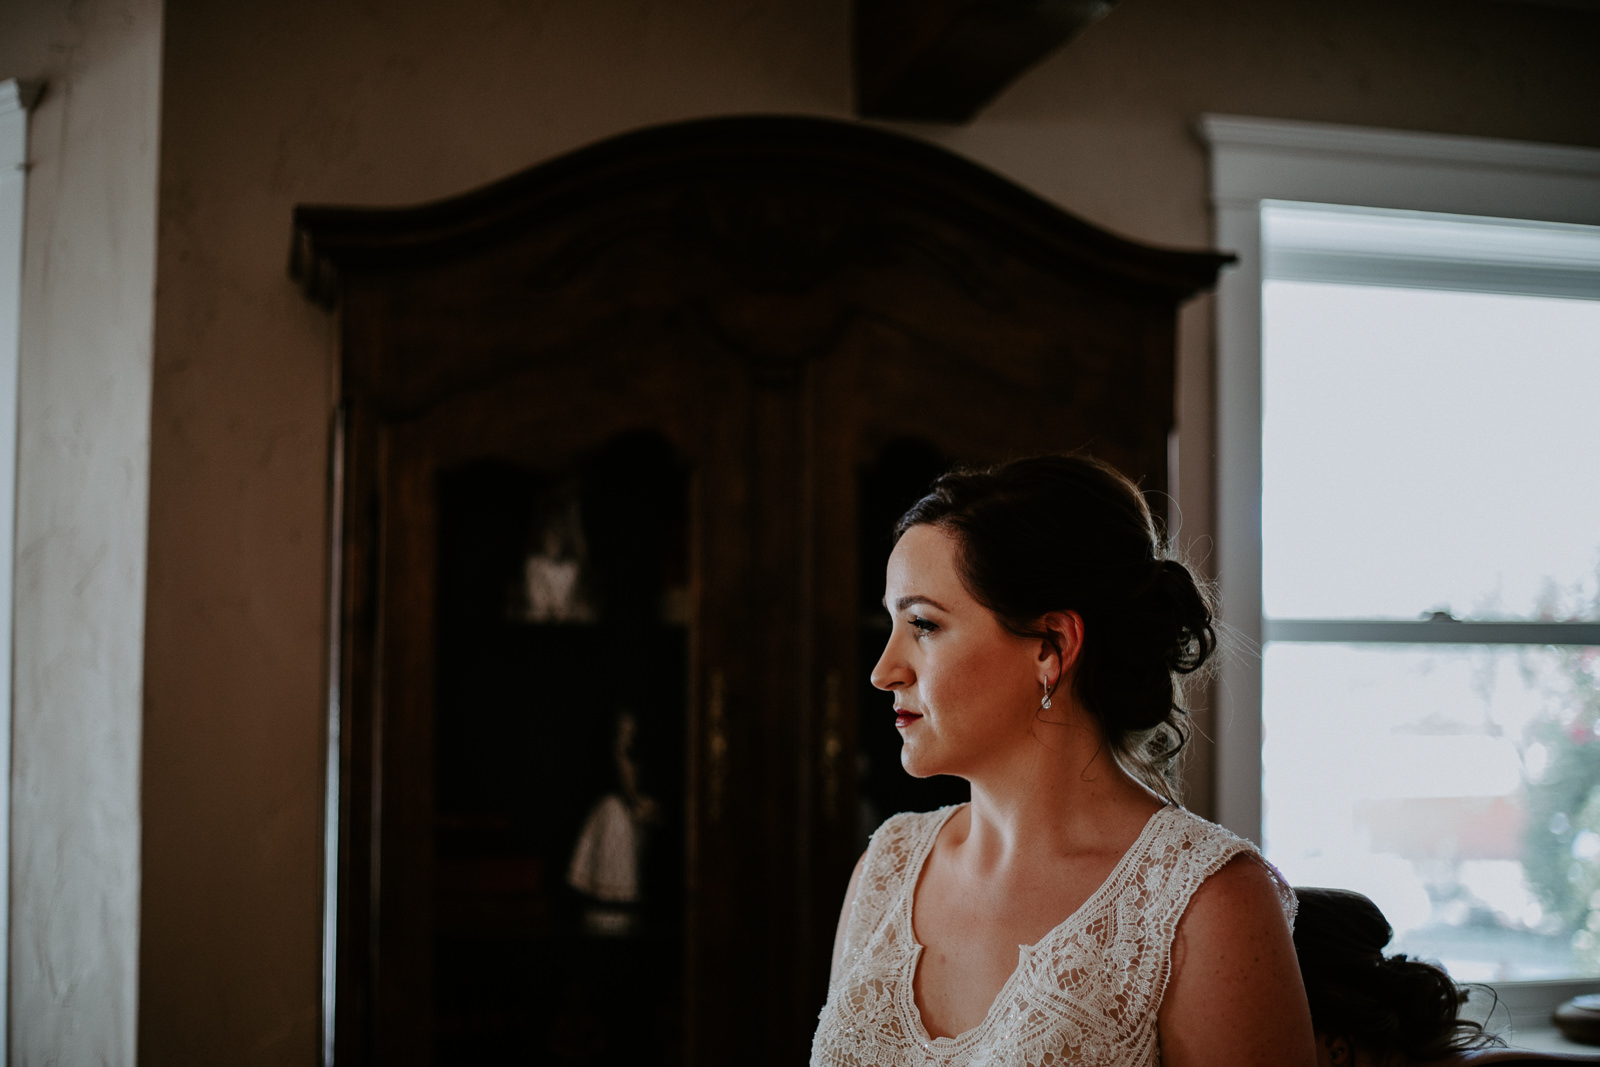 Bride having a quiet moment alone before wedding